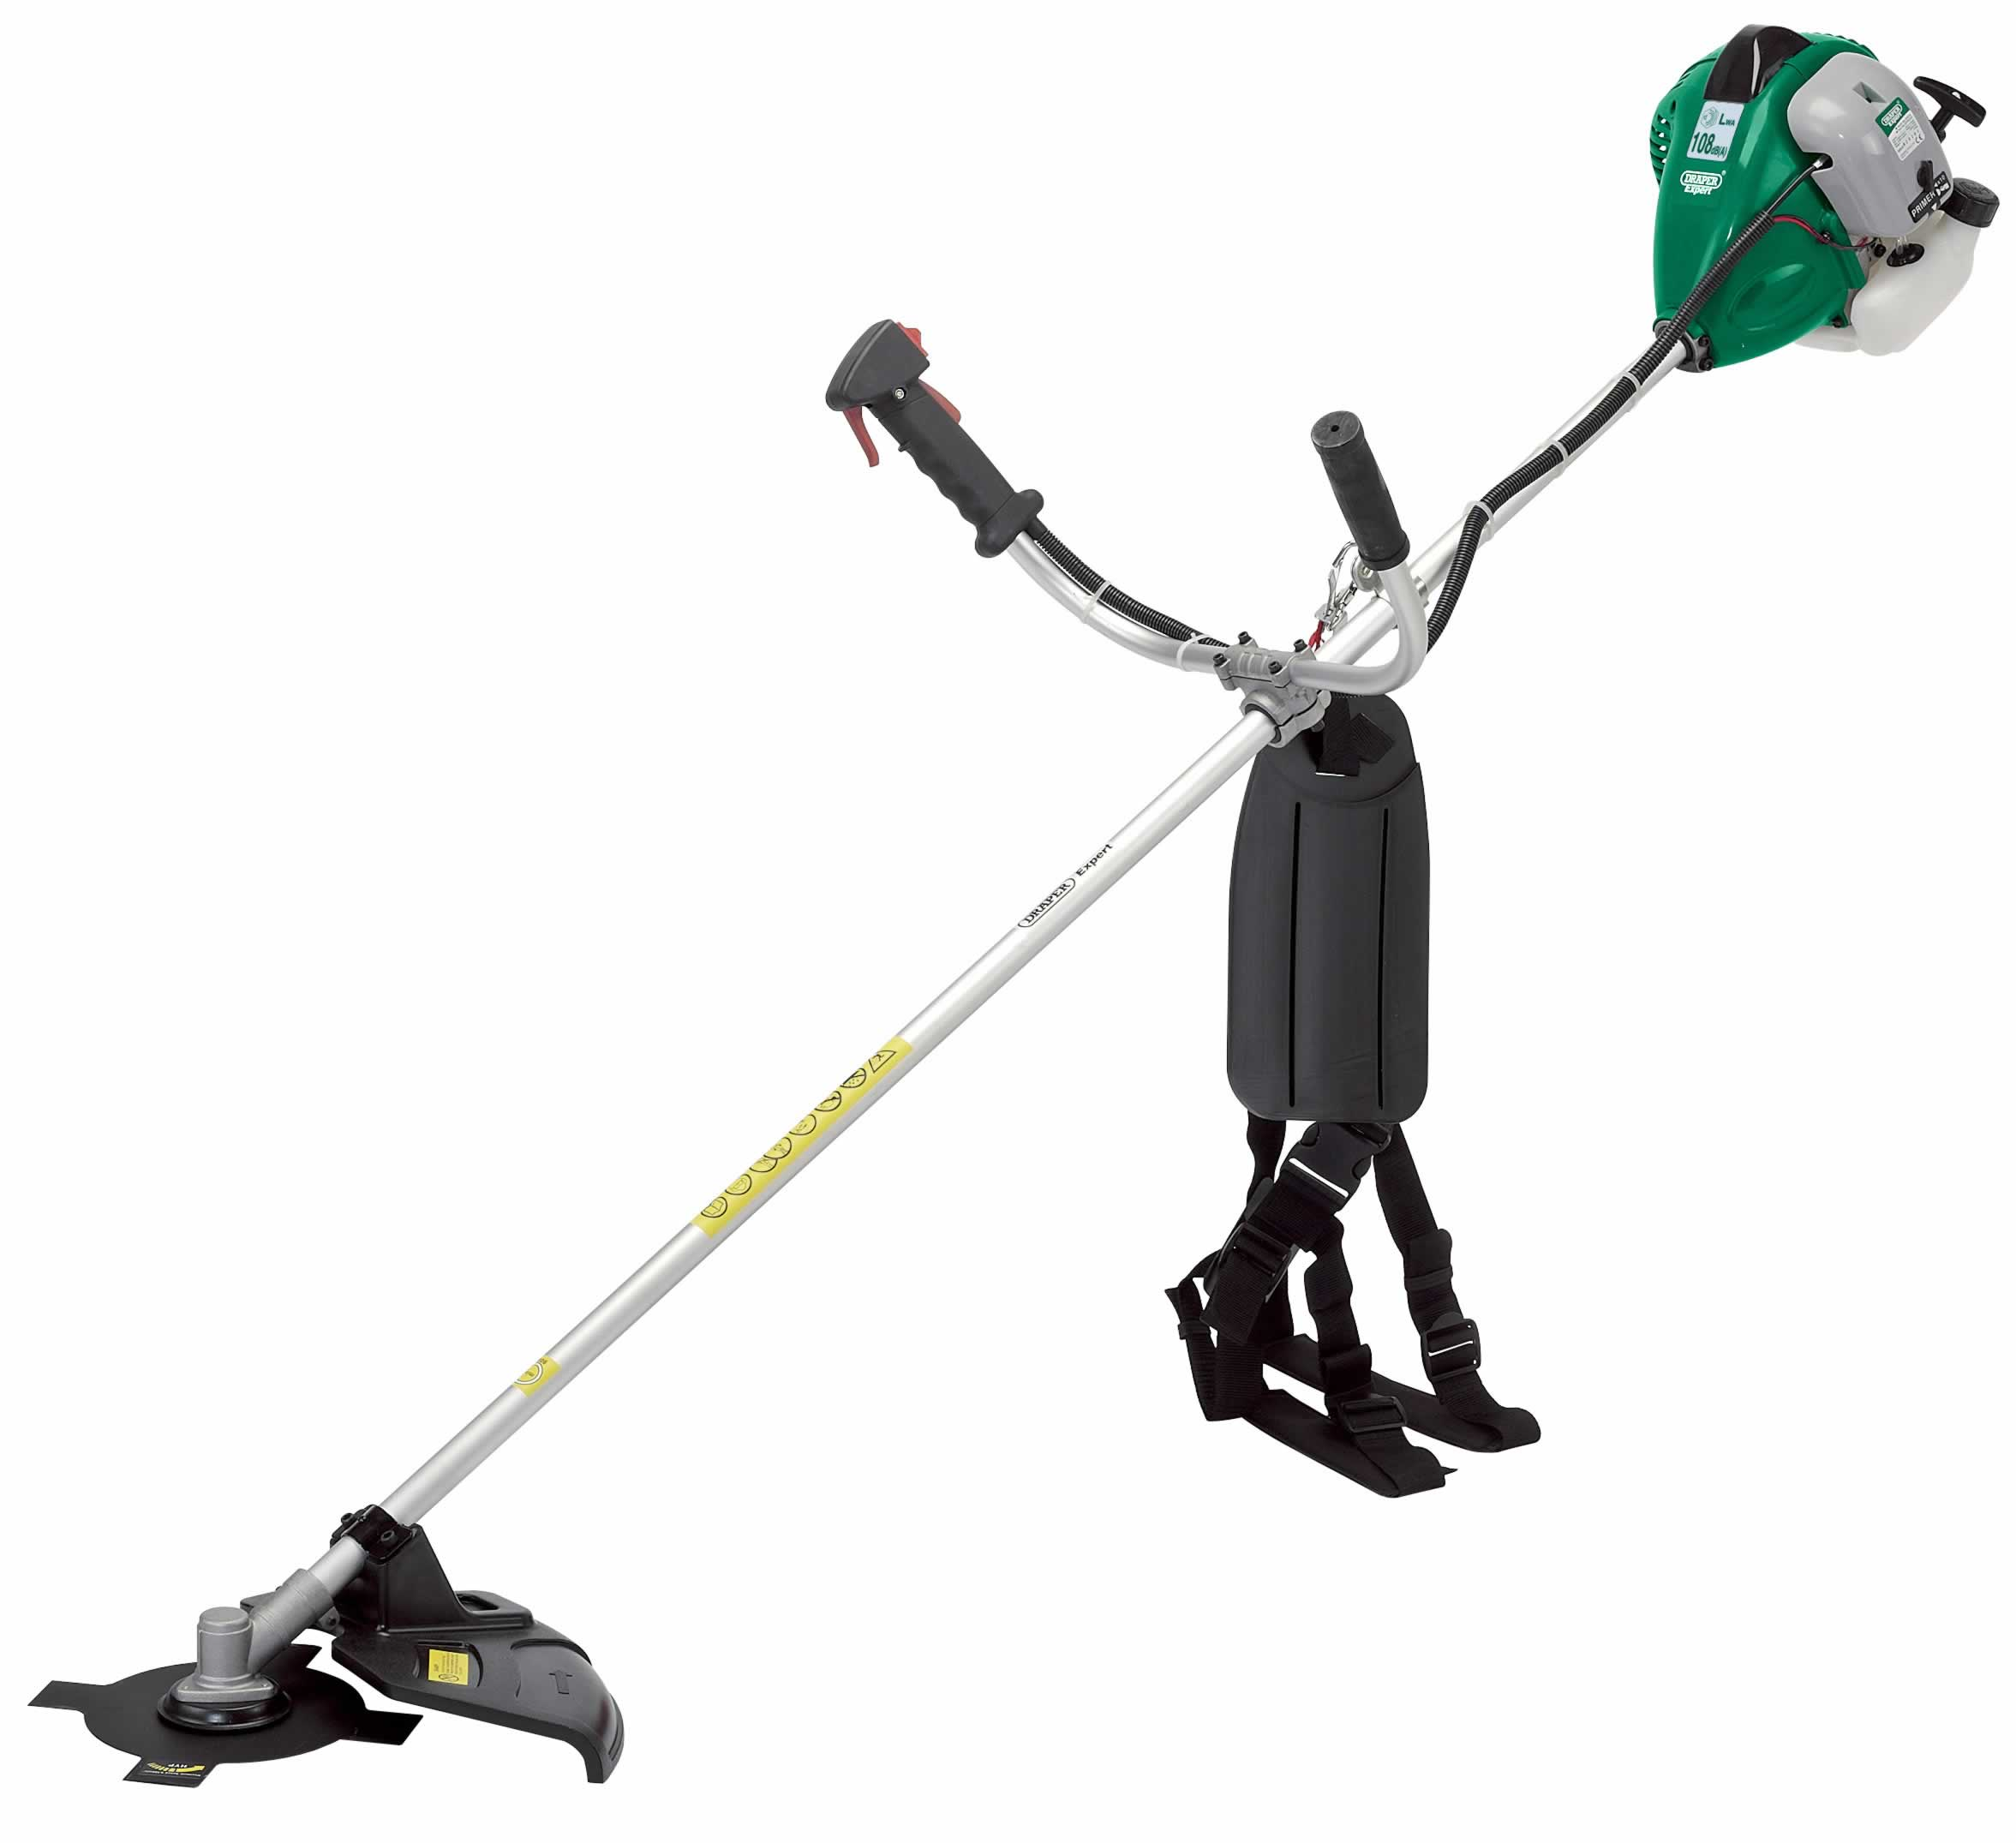 EXPERT 32CC PETROL BRUSH CUTTER AND LINE TRIMMER